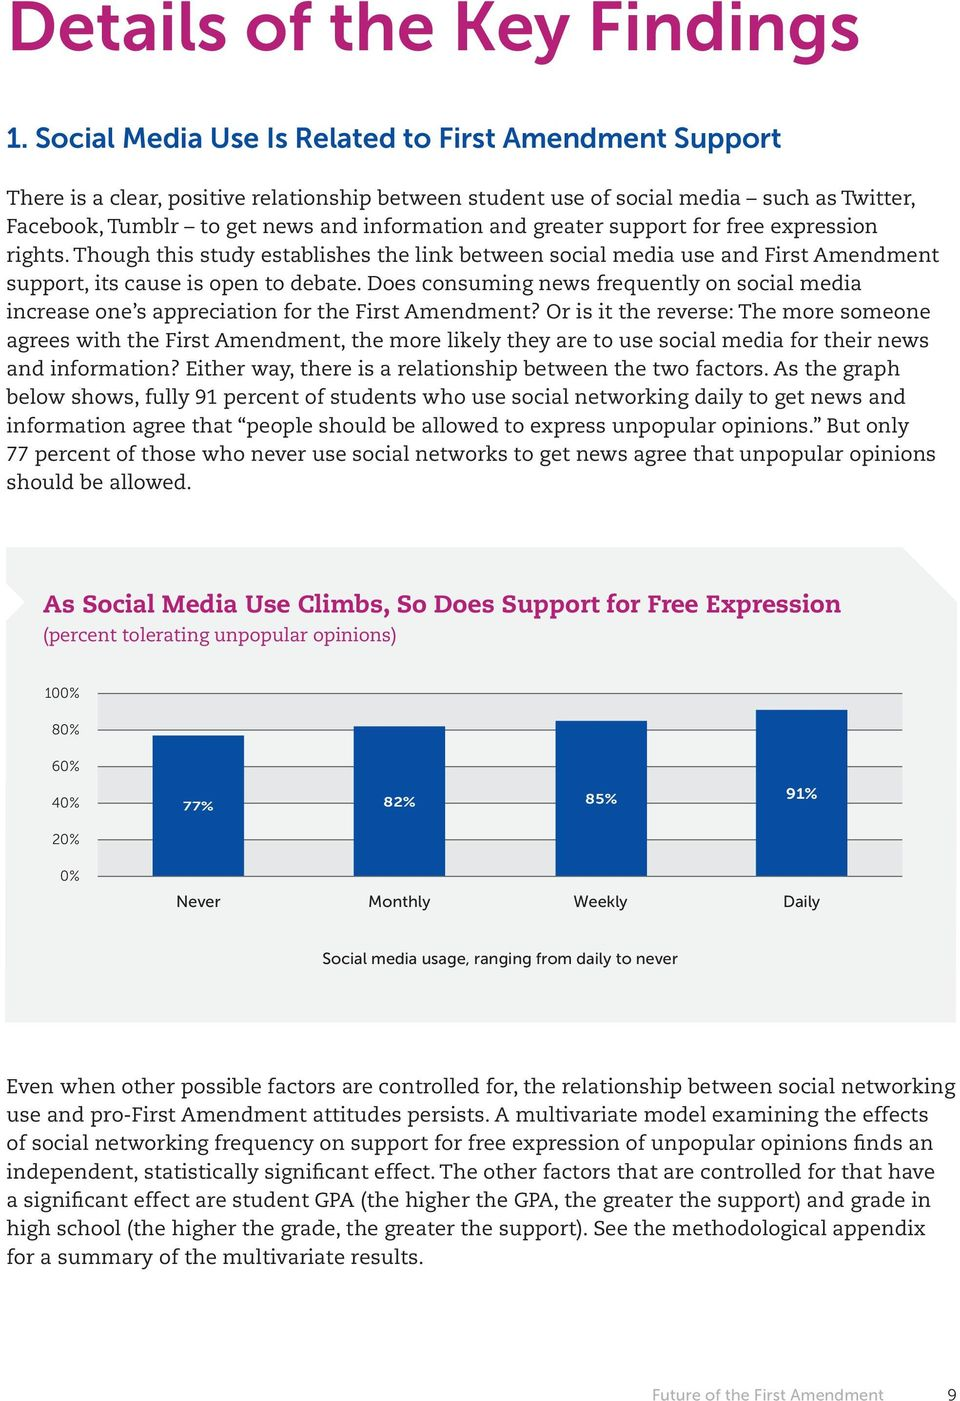 greater support for free expression rights. Though this study establishes the link between social media use and First Amendment support, its cause is open to debate.